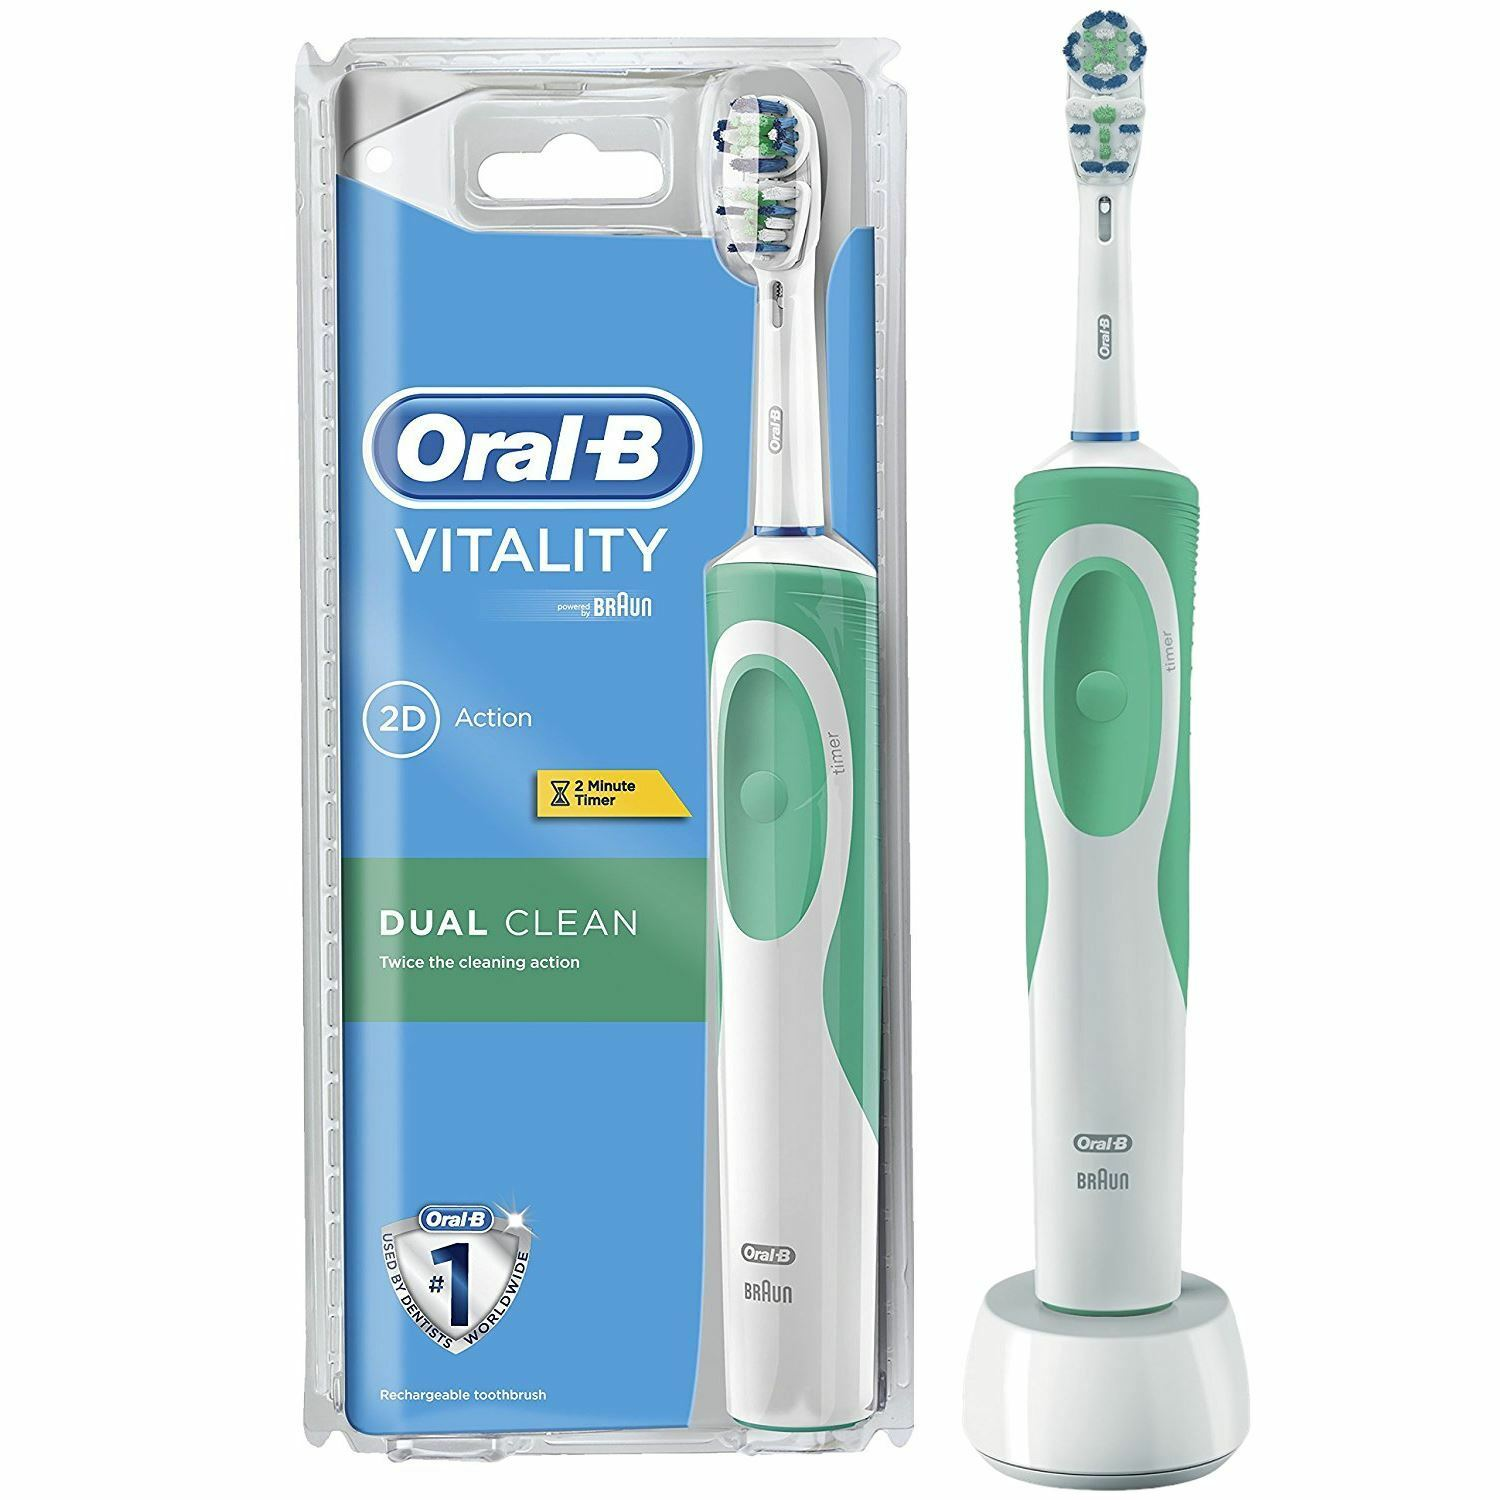 oral b braun vitality dual clean electric rechargeable power toothbrush timer. Black Bedroom Furniture Sets. Home Design Ideas